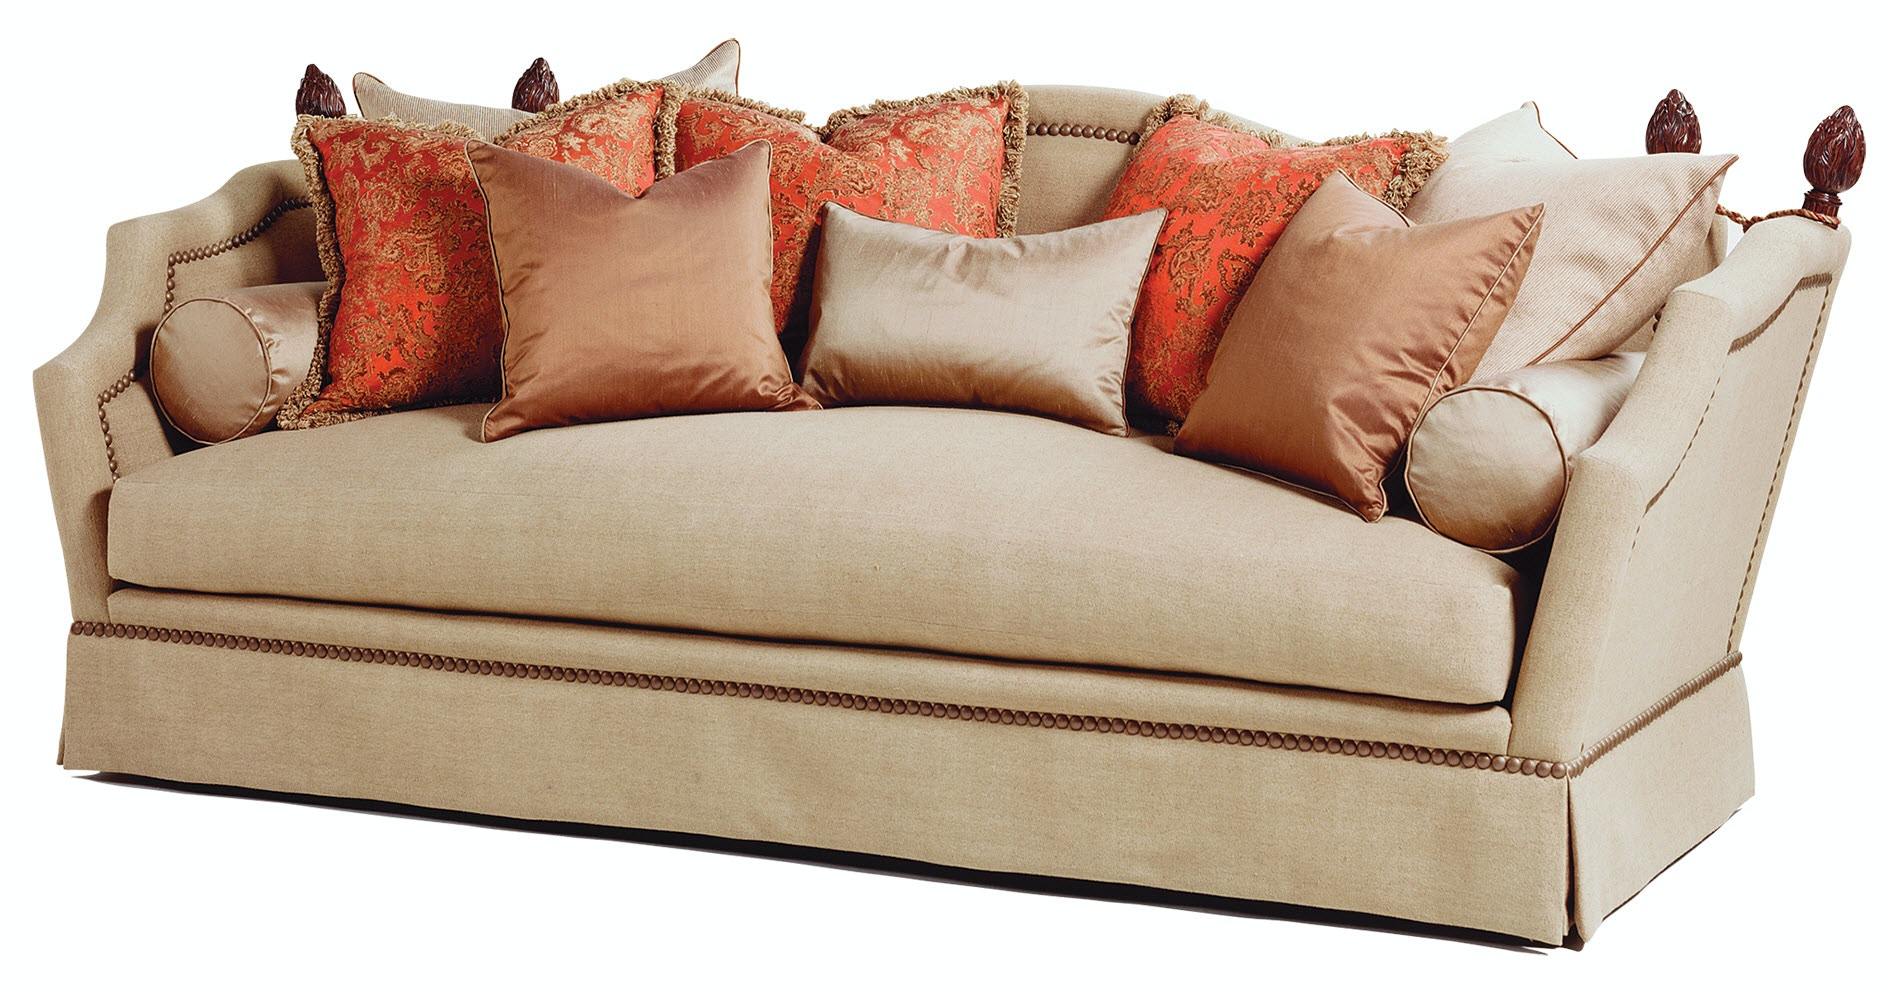 Marge Carson Living Room Francesca Sofa FA43 Noel Furniture